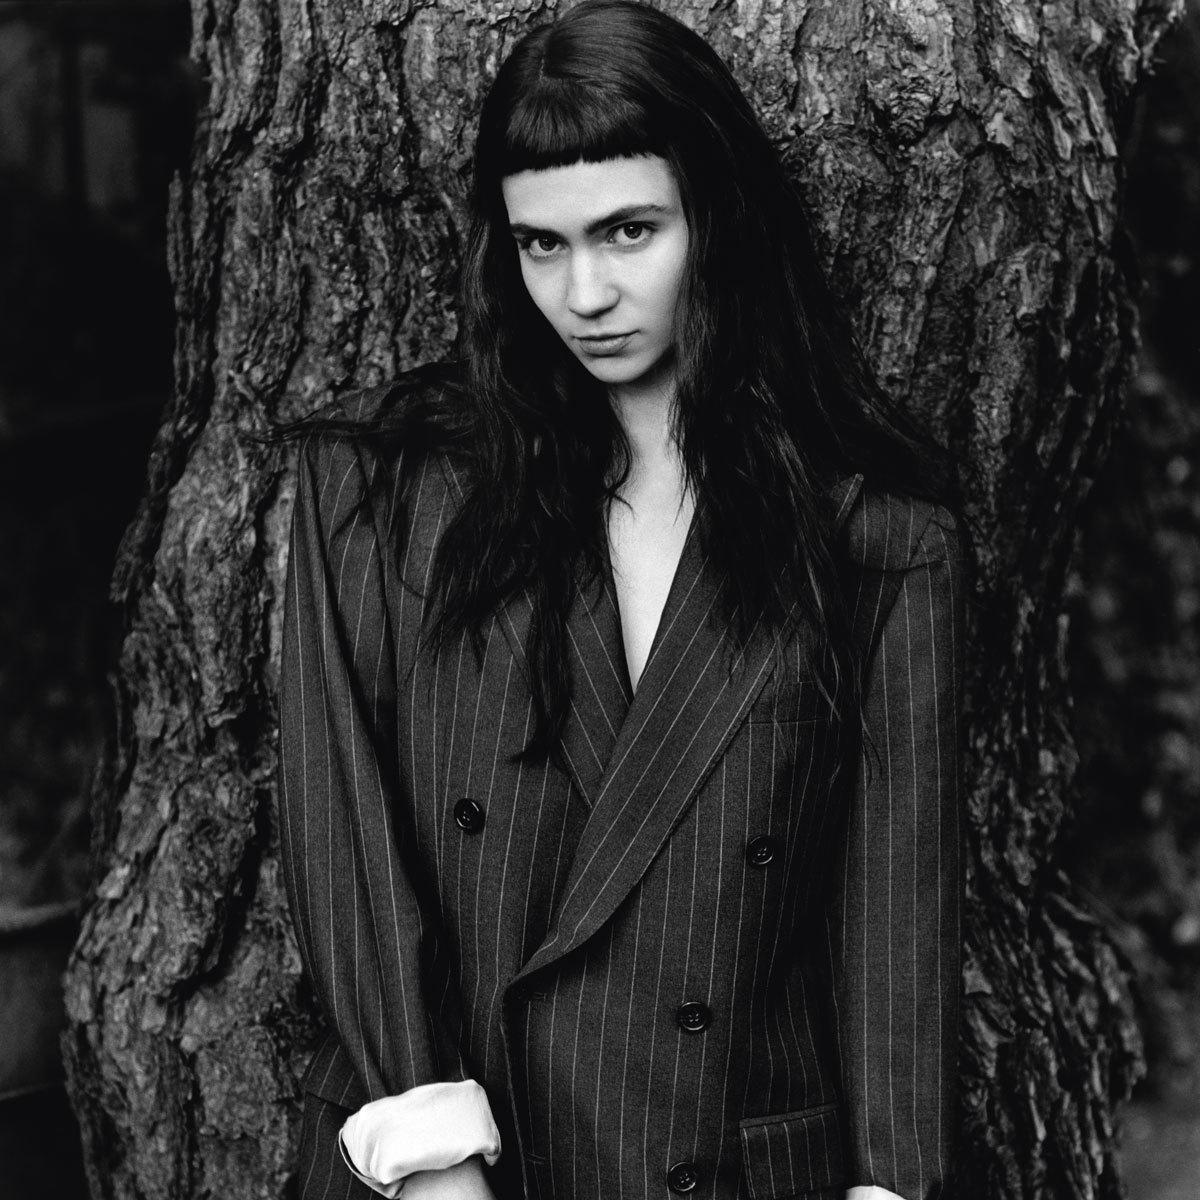 """""""It's a crime against humanity for this music not to be heard,"""" @Grimezsz: http://t.co/xLsGJThtKV http://t.co/fvPdAhLHX1"""